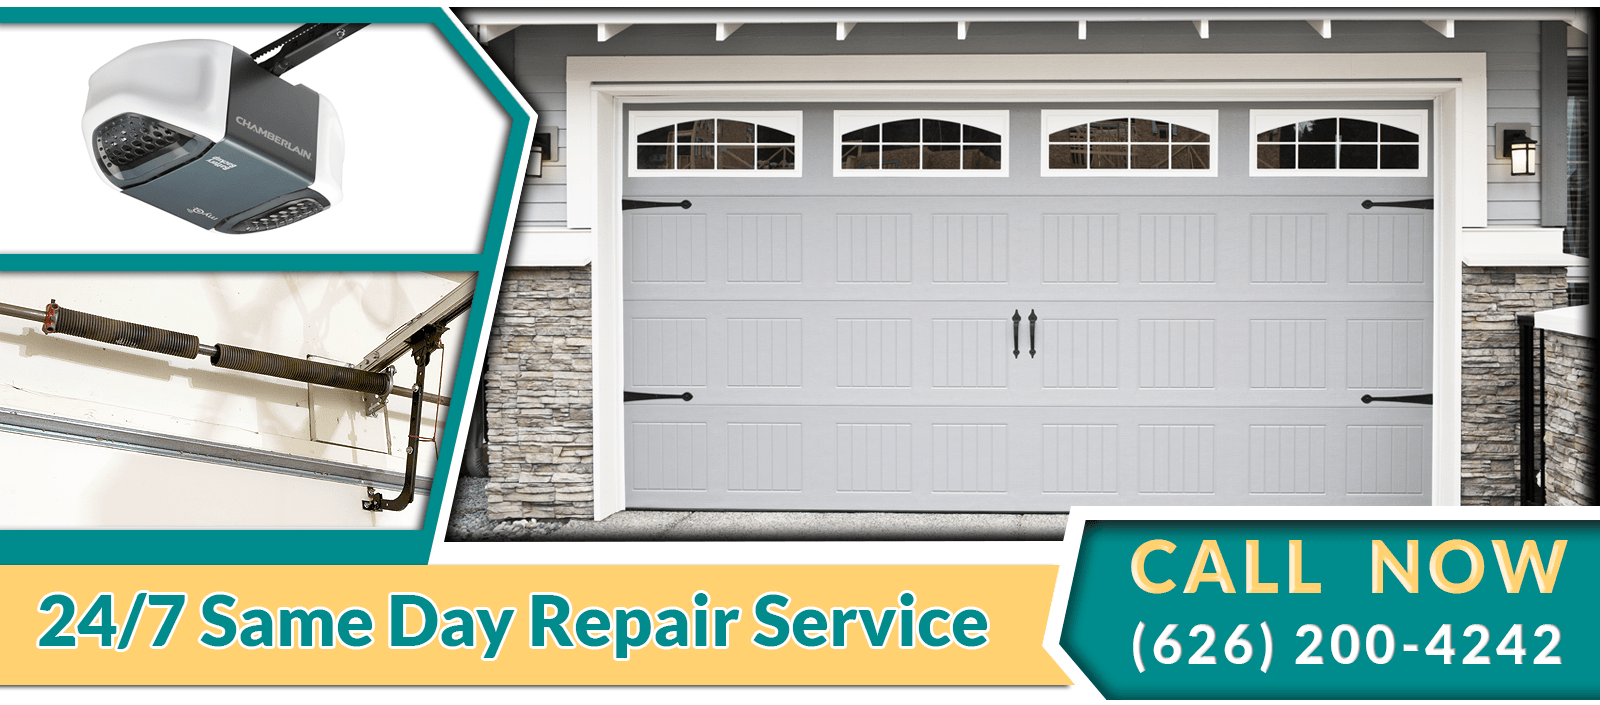 Garage door cable broke - Garage Door Repair Pasadena Ca